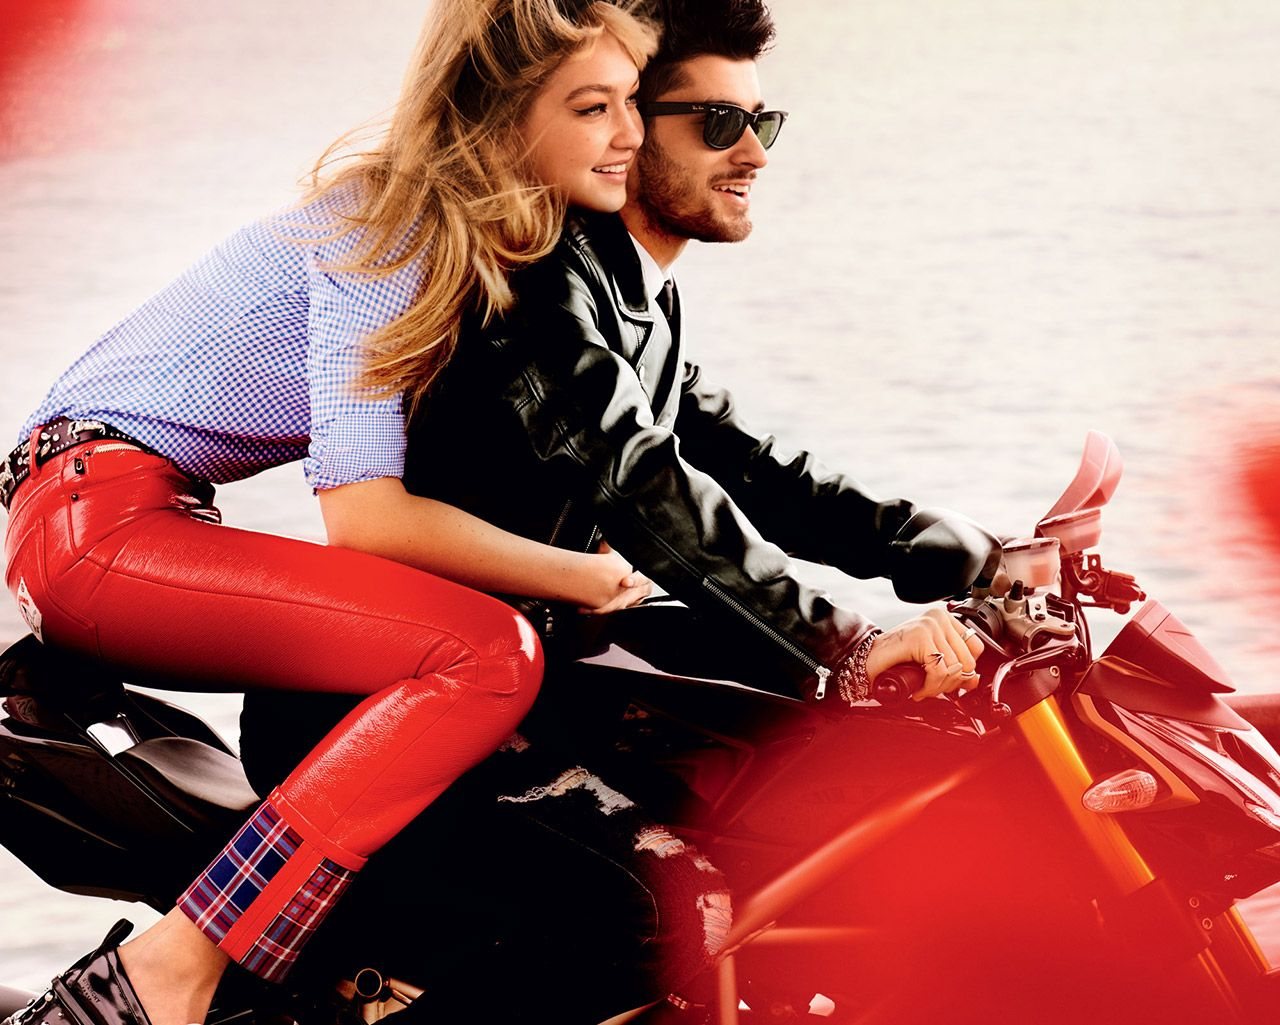 Dress up zayn malik games - Gigi Hadid And Zayn Malik Look Crazy In Love And Beautiful In Romantic Vogue Photoshoot